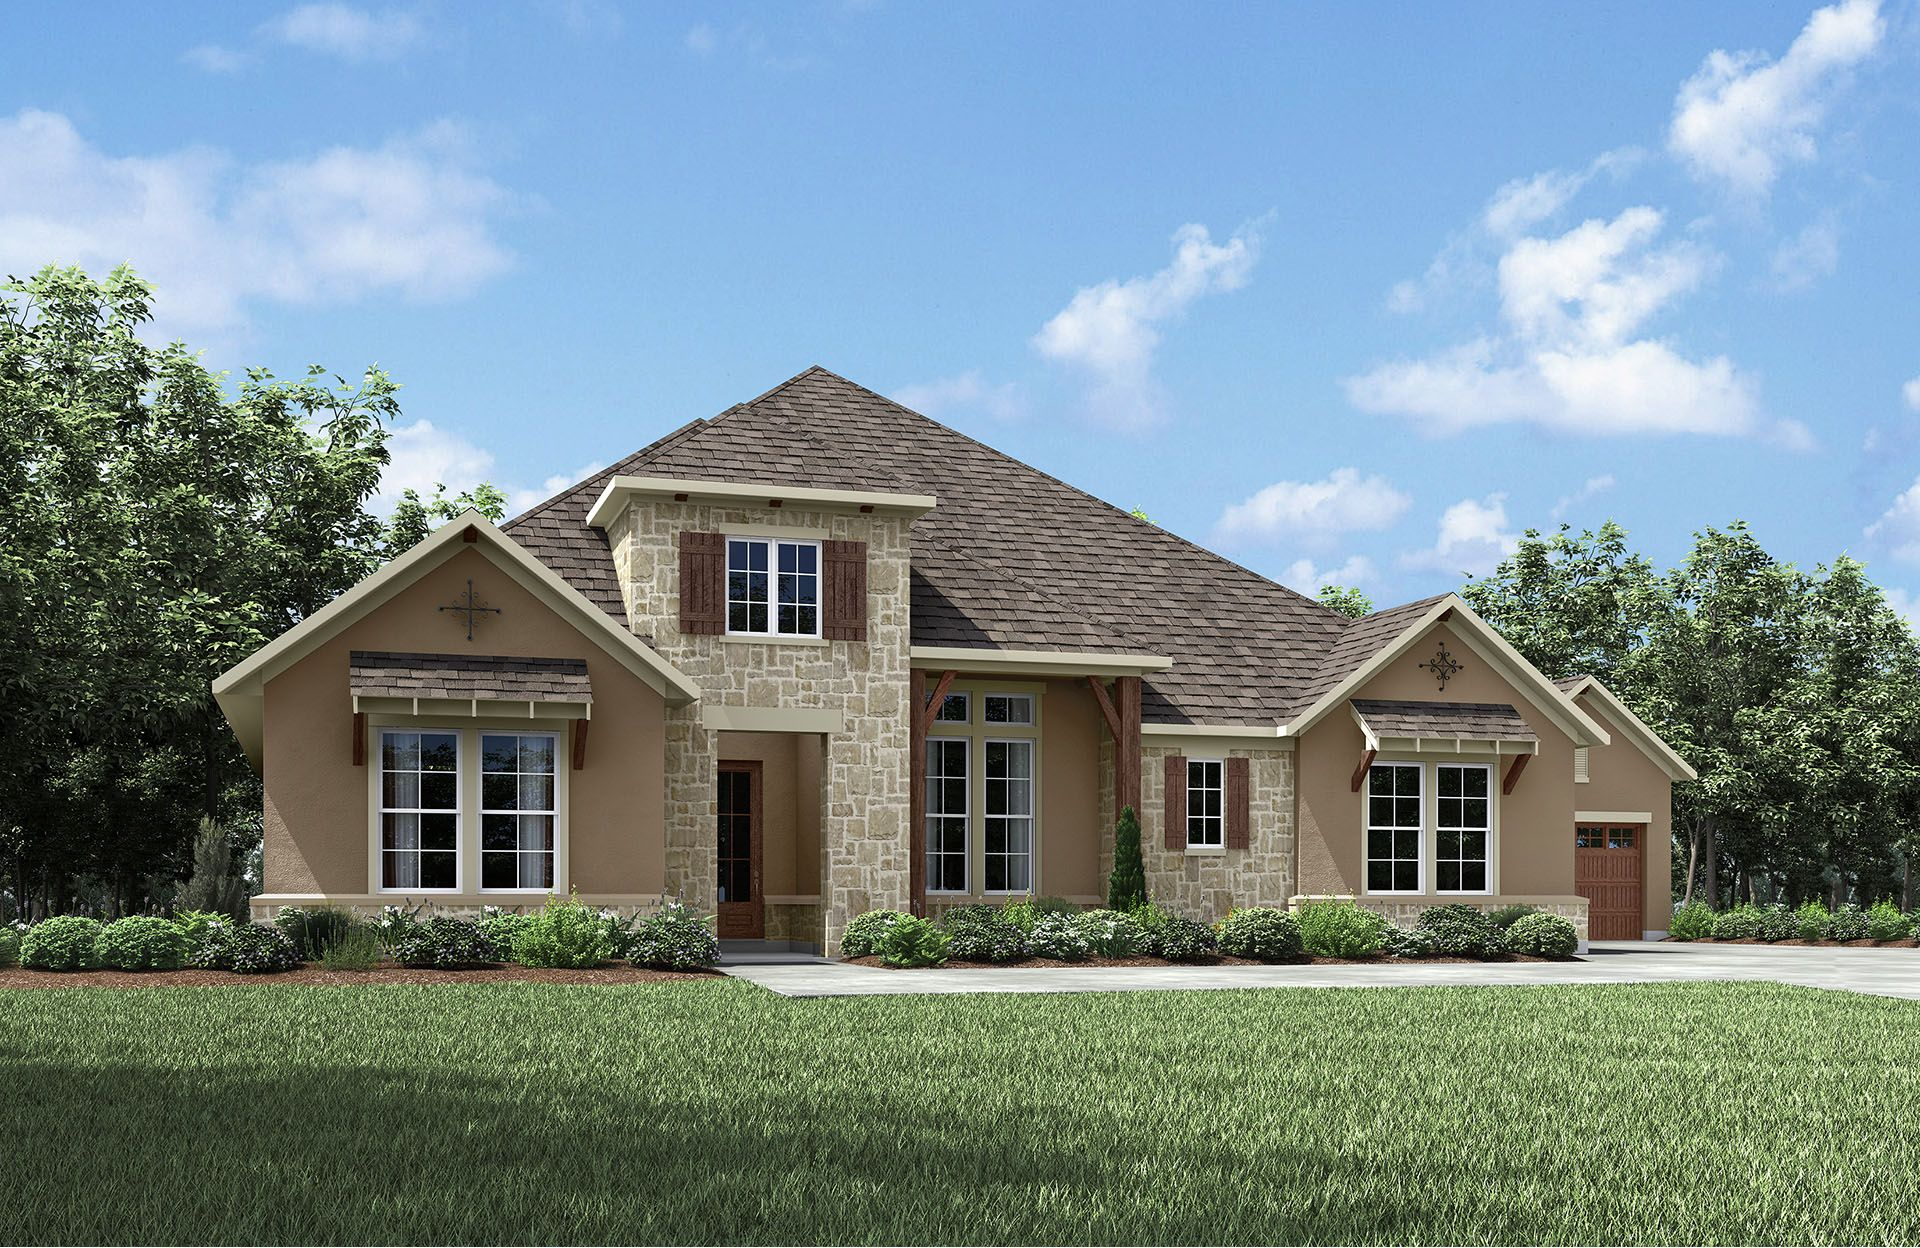 Single Family for Active at Belterra - Castella Ii 131 Waters View Court Dripping Springs, Texas 78620 United States